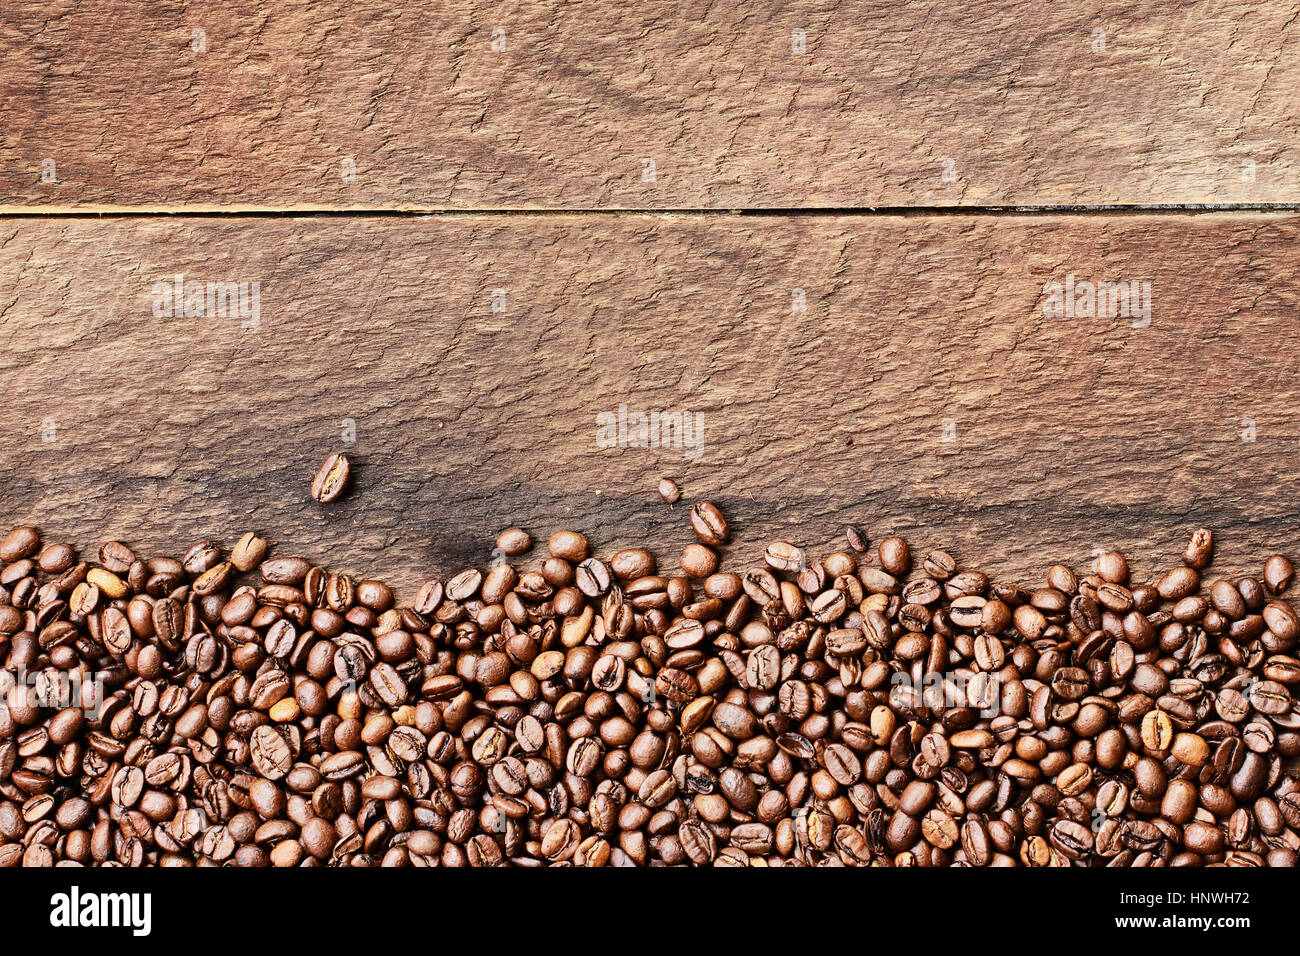 Overhead shot looking down on a flatlay image of coffee beans over a rustic wood table top background with copy - Stock Image